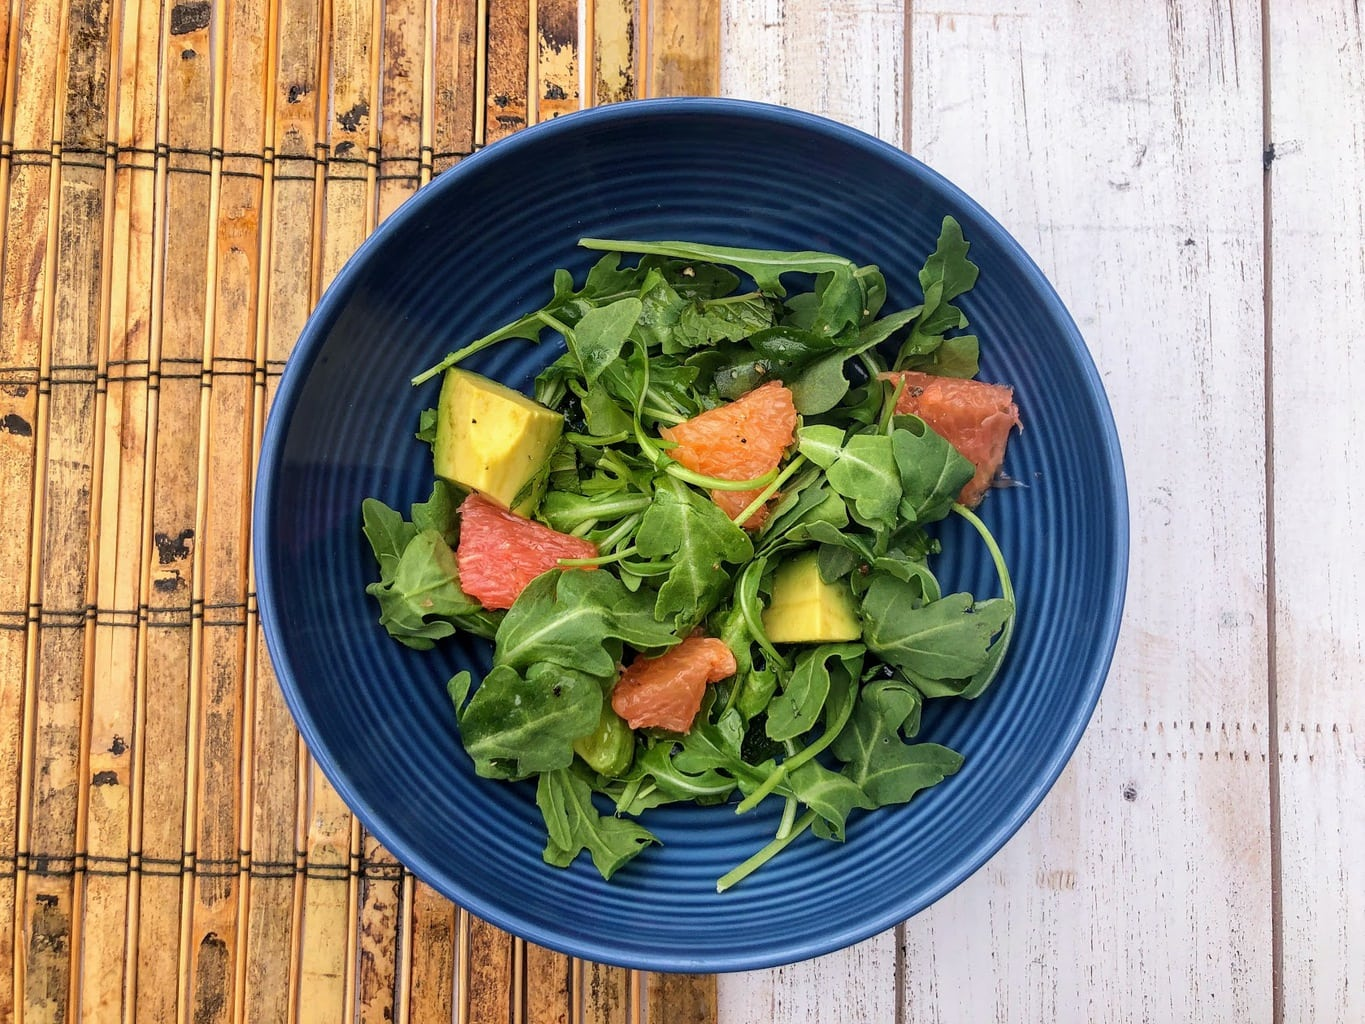 Grapefruit, Avocado & Arugula Salad